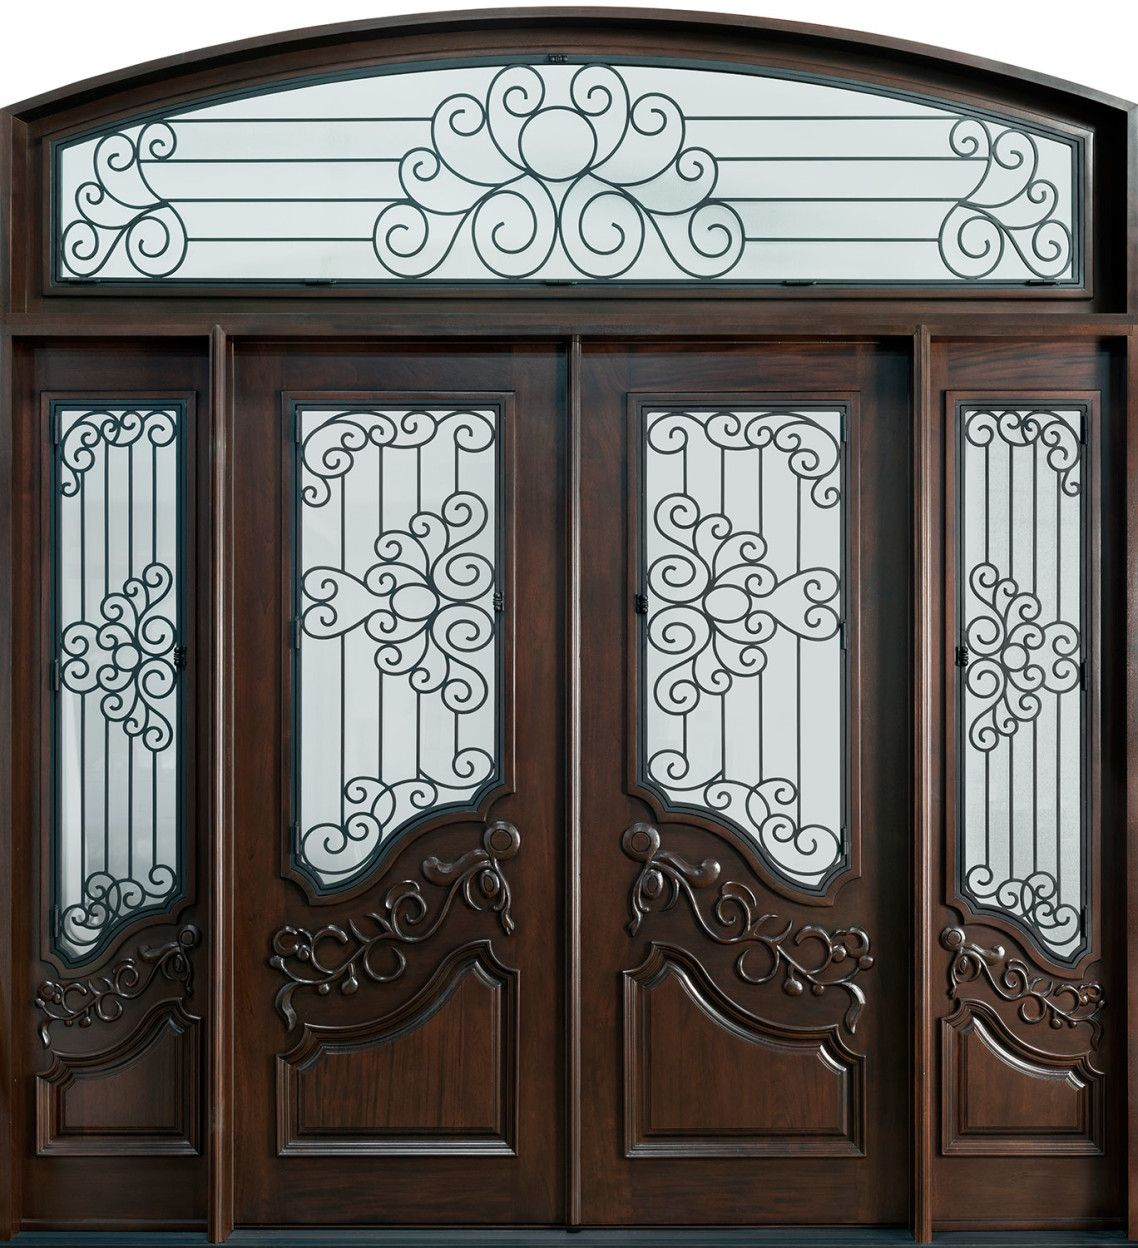 Dark Brown Polished Wooden Door Mixed With Carved Wrought Iron